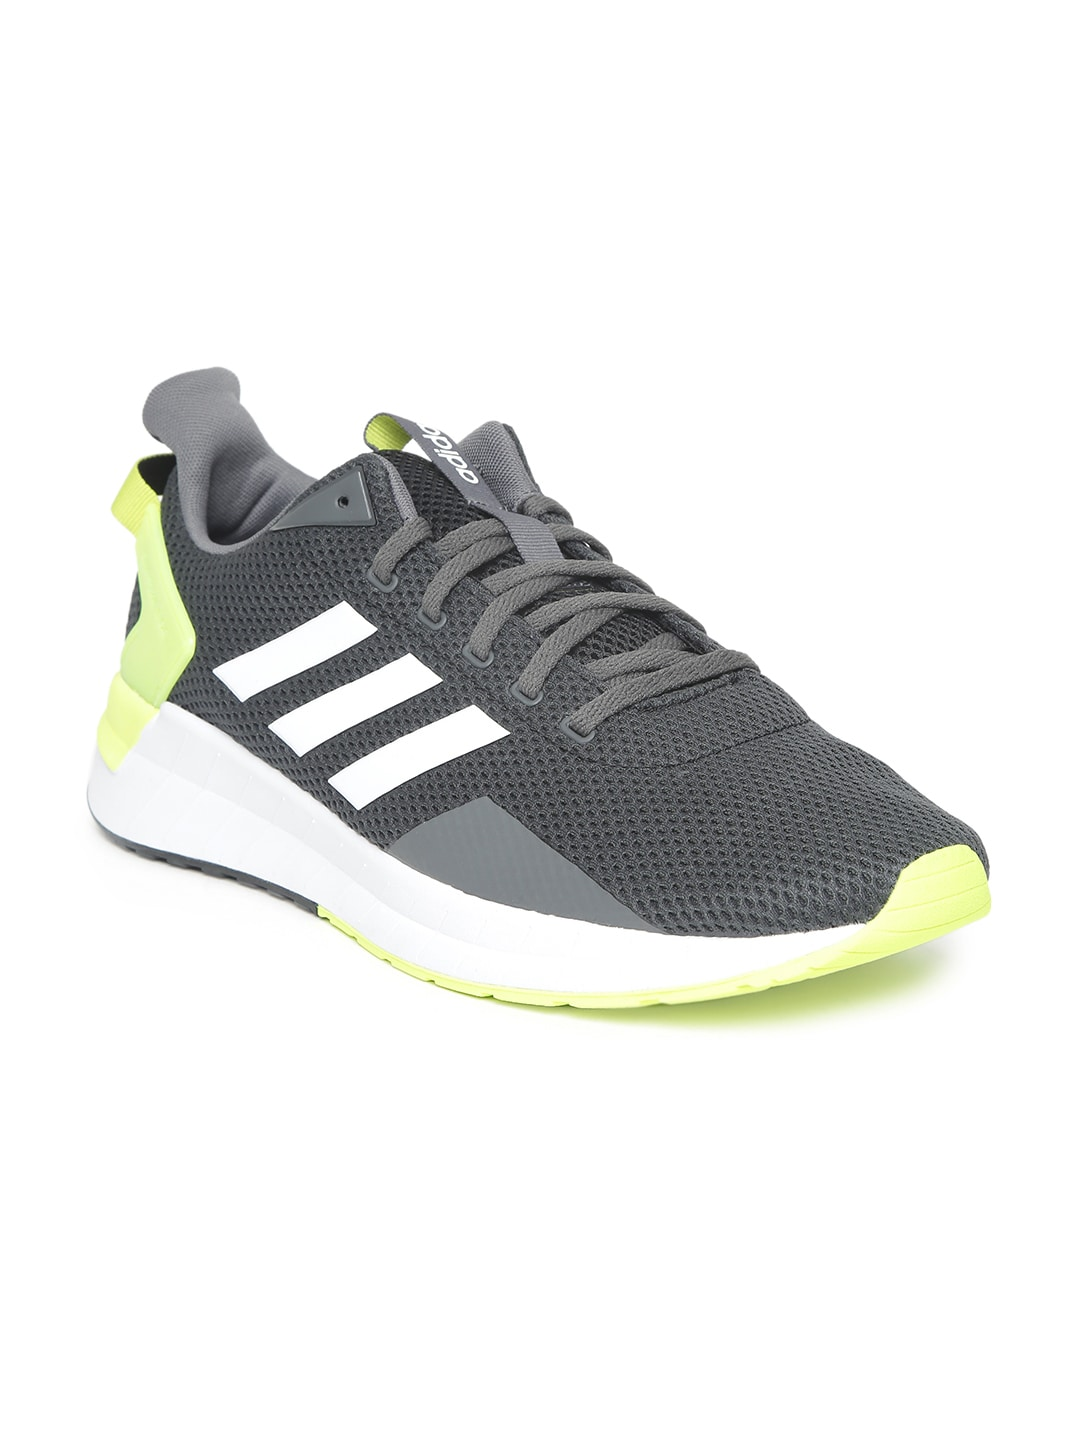 b63fe334b2f Adidas Basketball Shoes